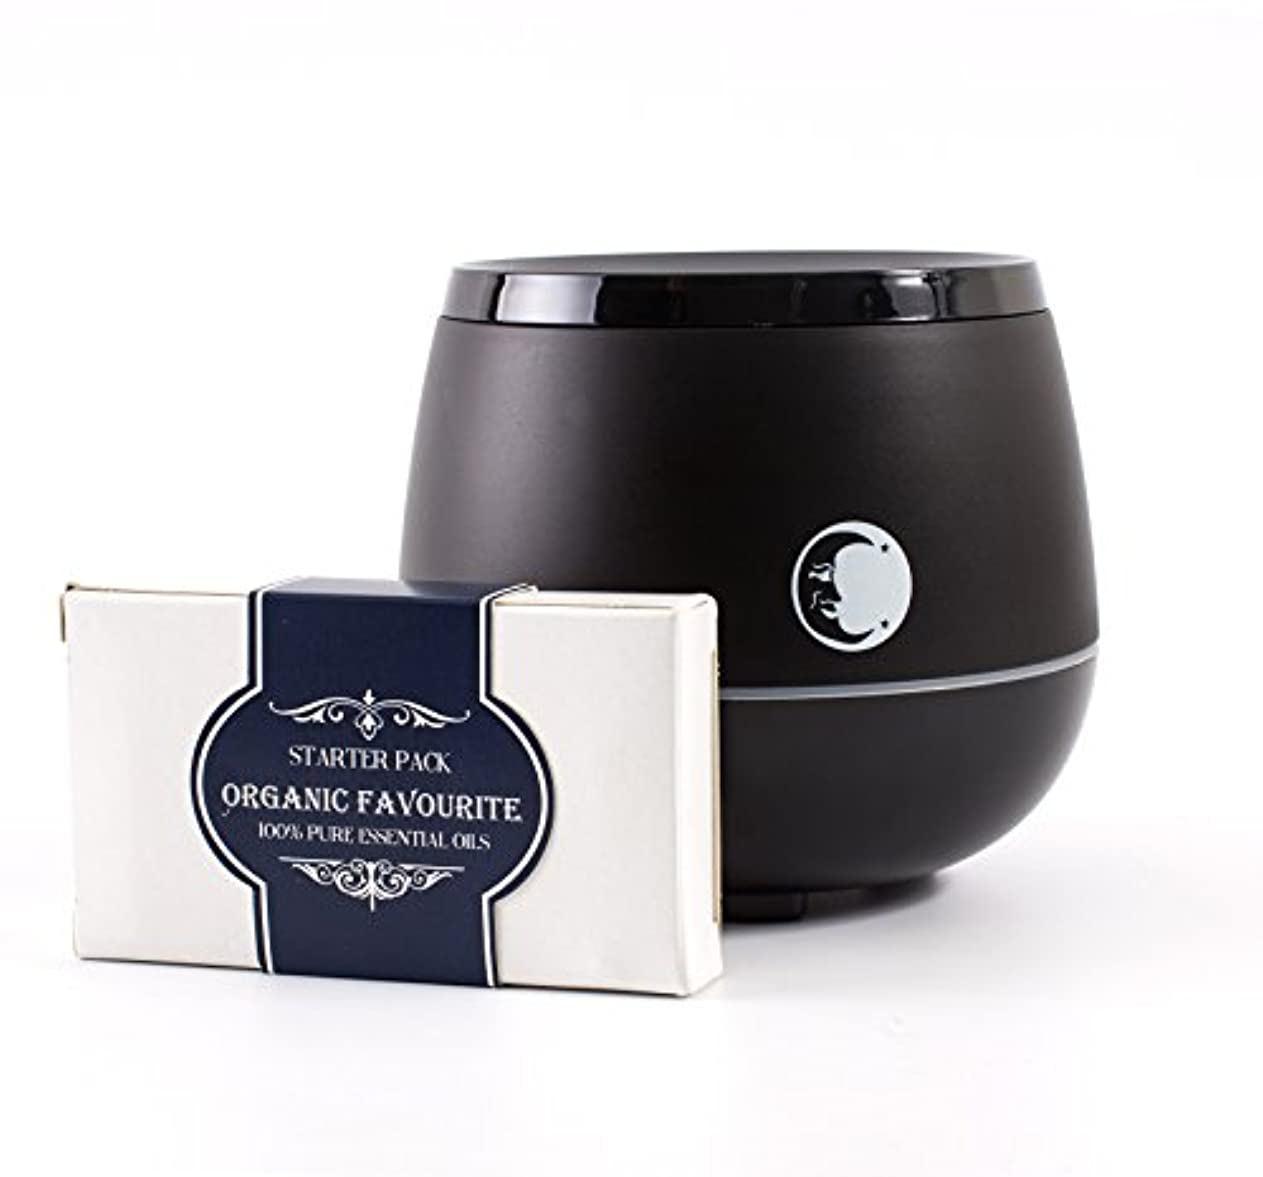 ロバトランスミッション飢えたMystic Moments | Black Aromatherapy Oil Ultrasonic Diffuser With Bluetooth Speaker & LED Lights + Organic Favourite...